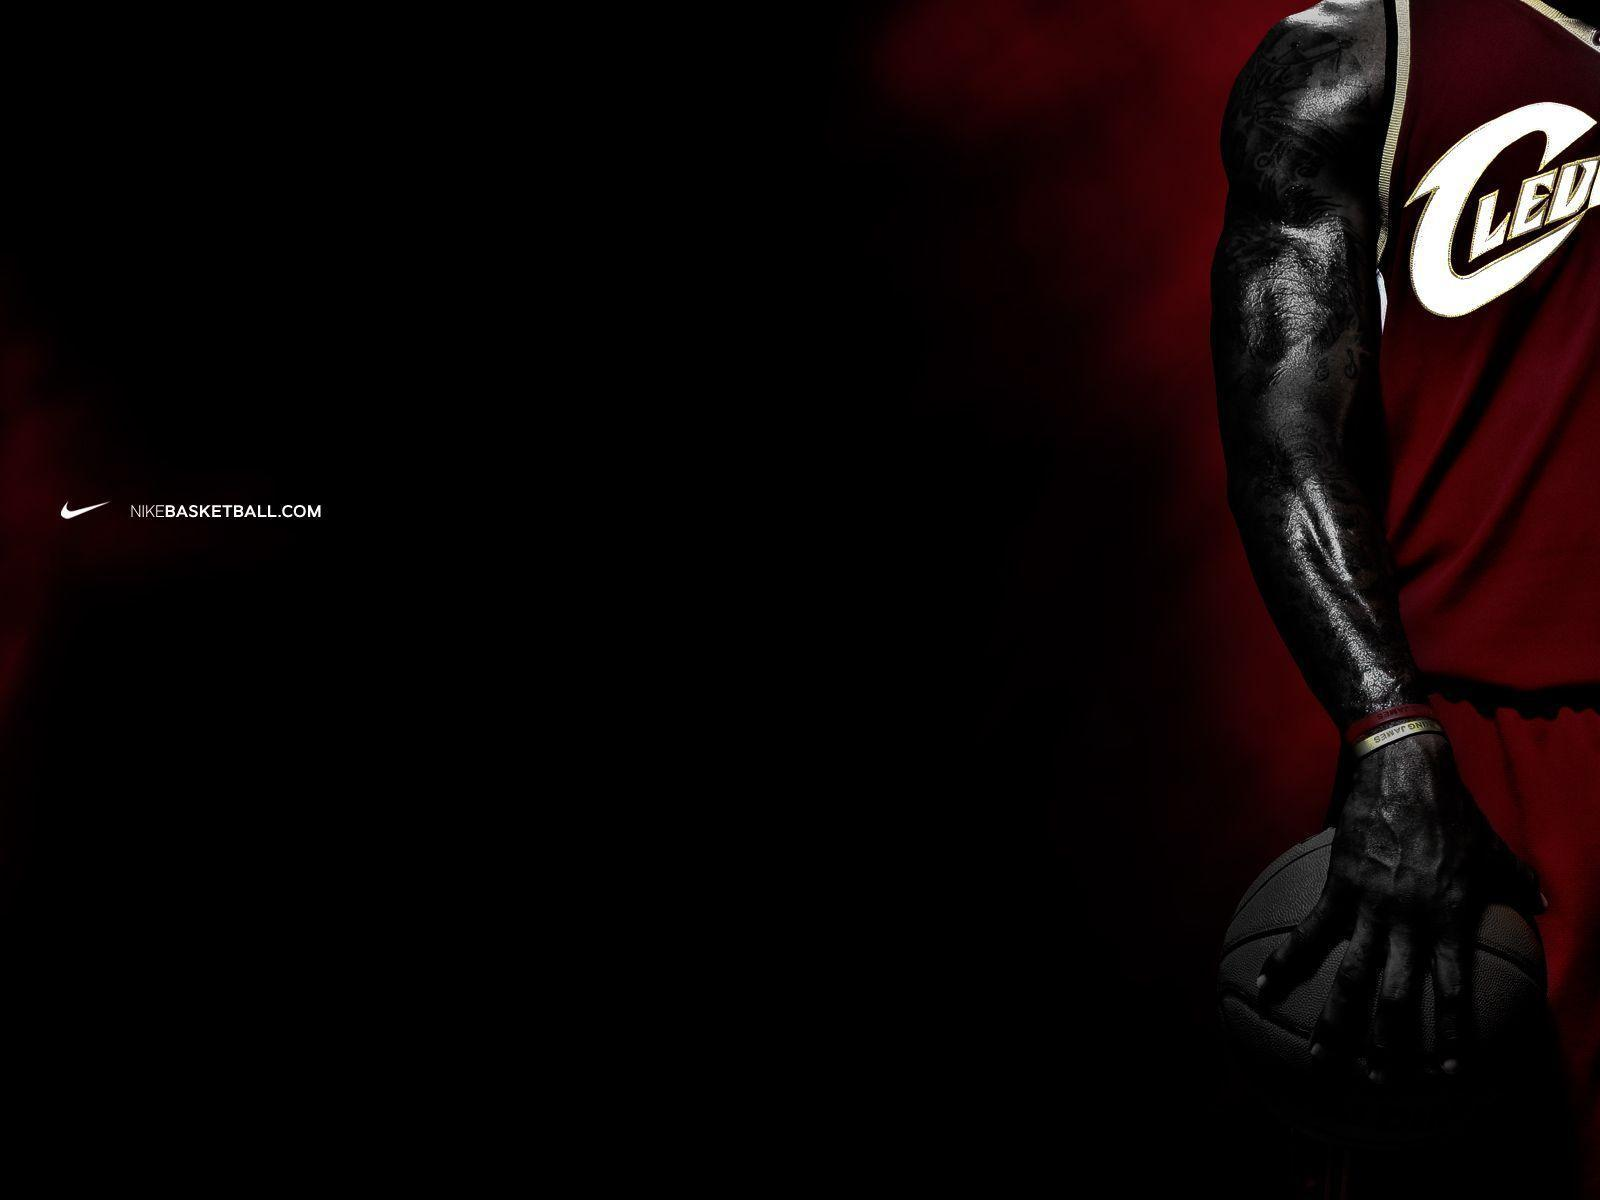 Lebron James Wallpapers Nike - Wallpaper Cave